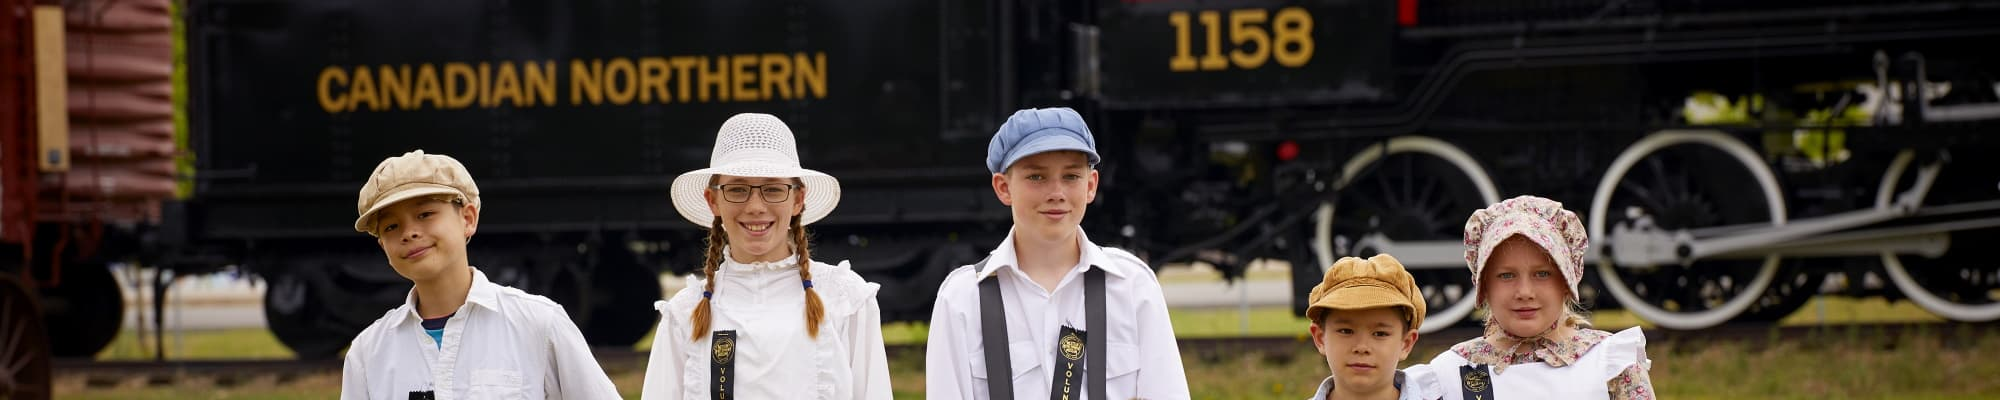 5 kids, dressed in 1910 era clothing and hats standing in front of a steam locomotive